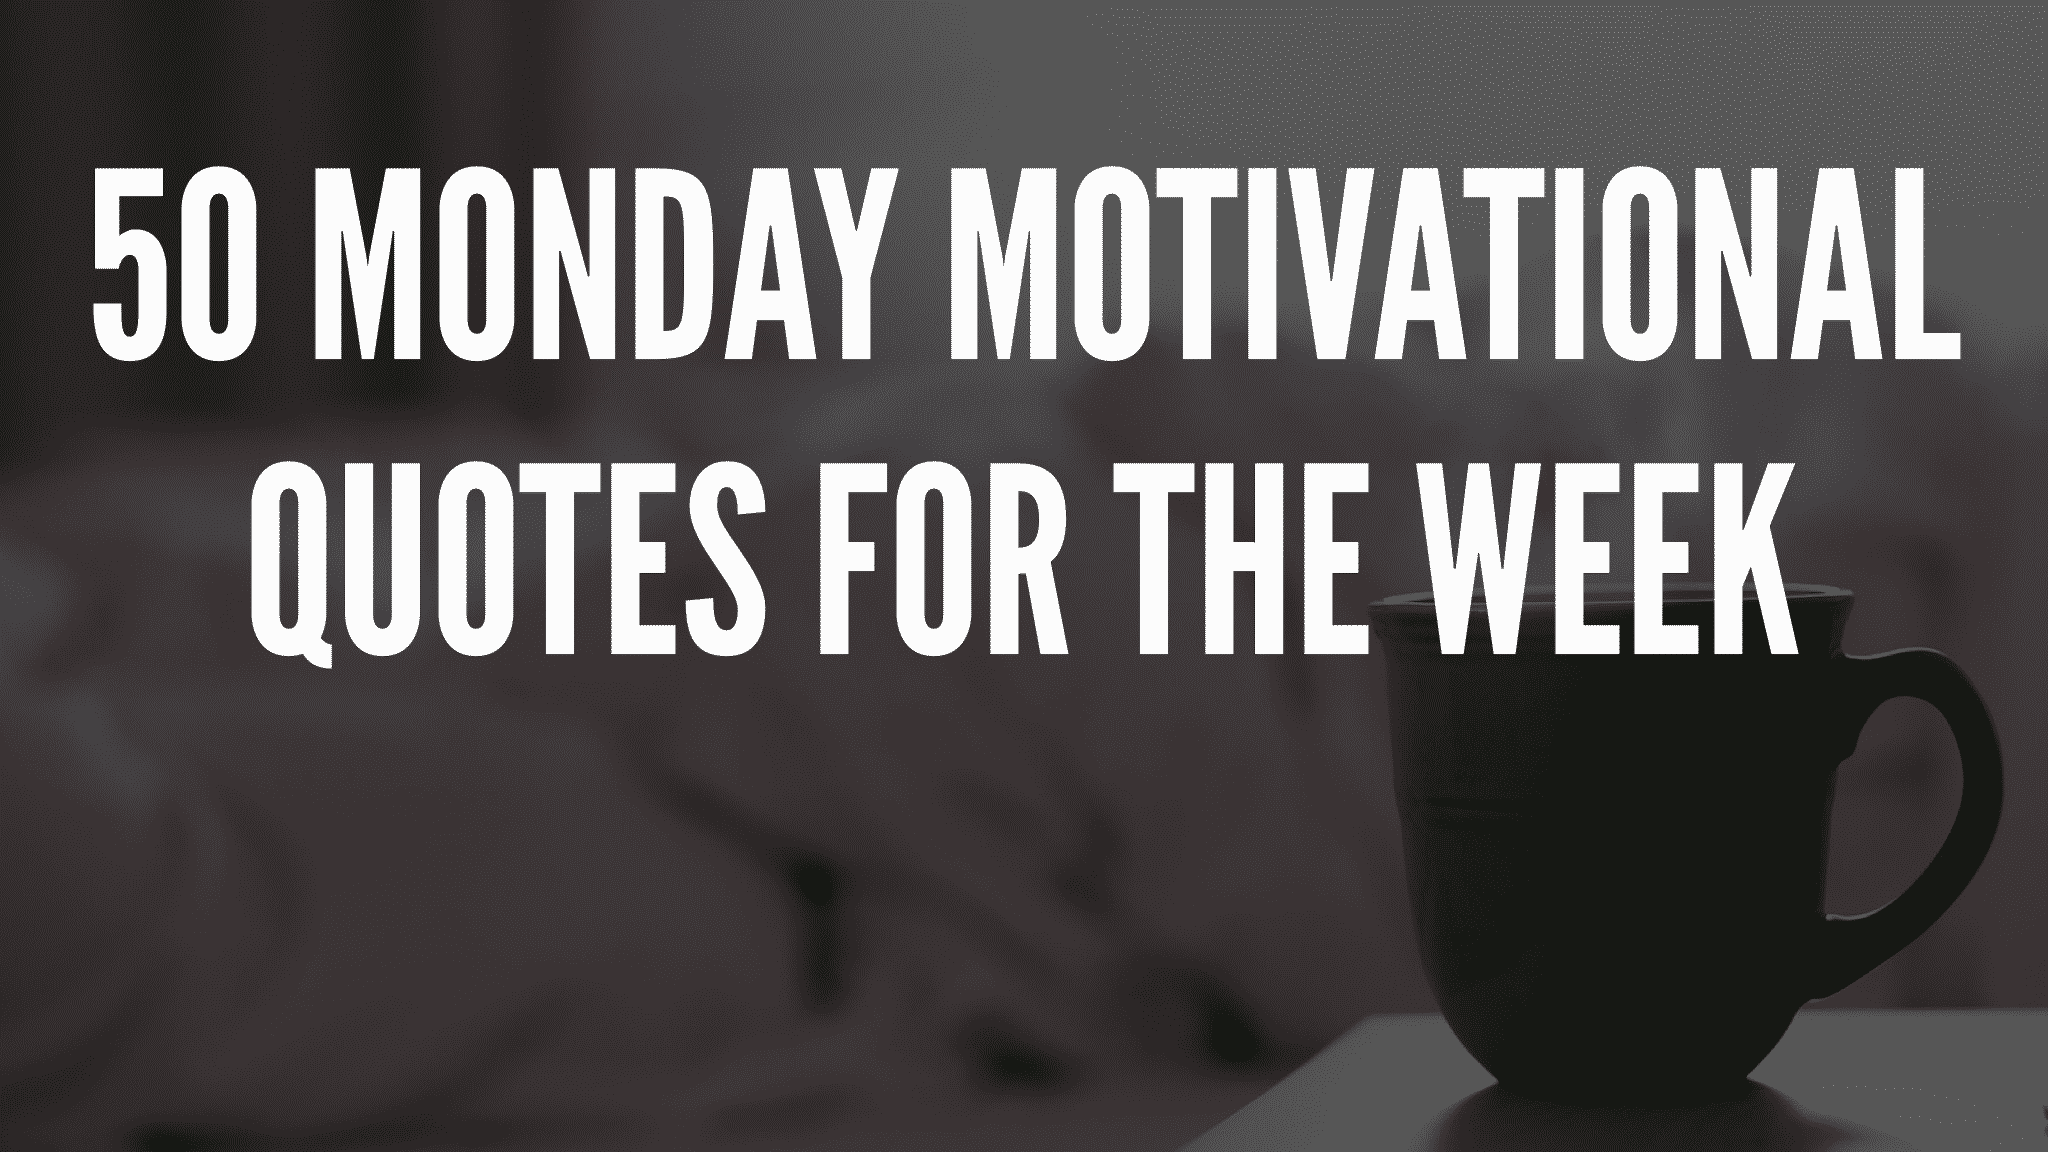 50 Monday Motivational Quotes For The Week